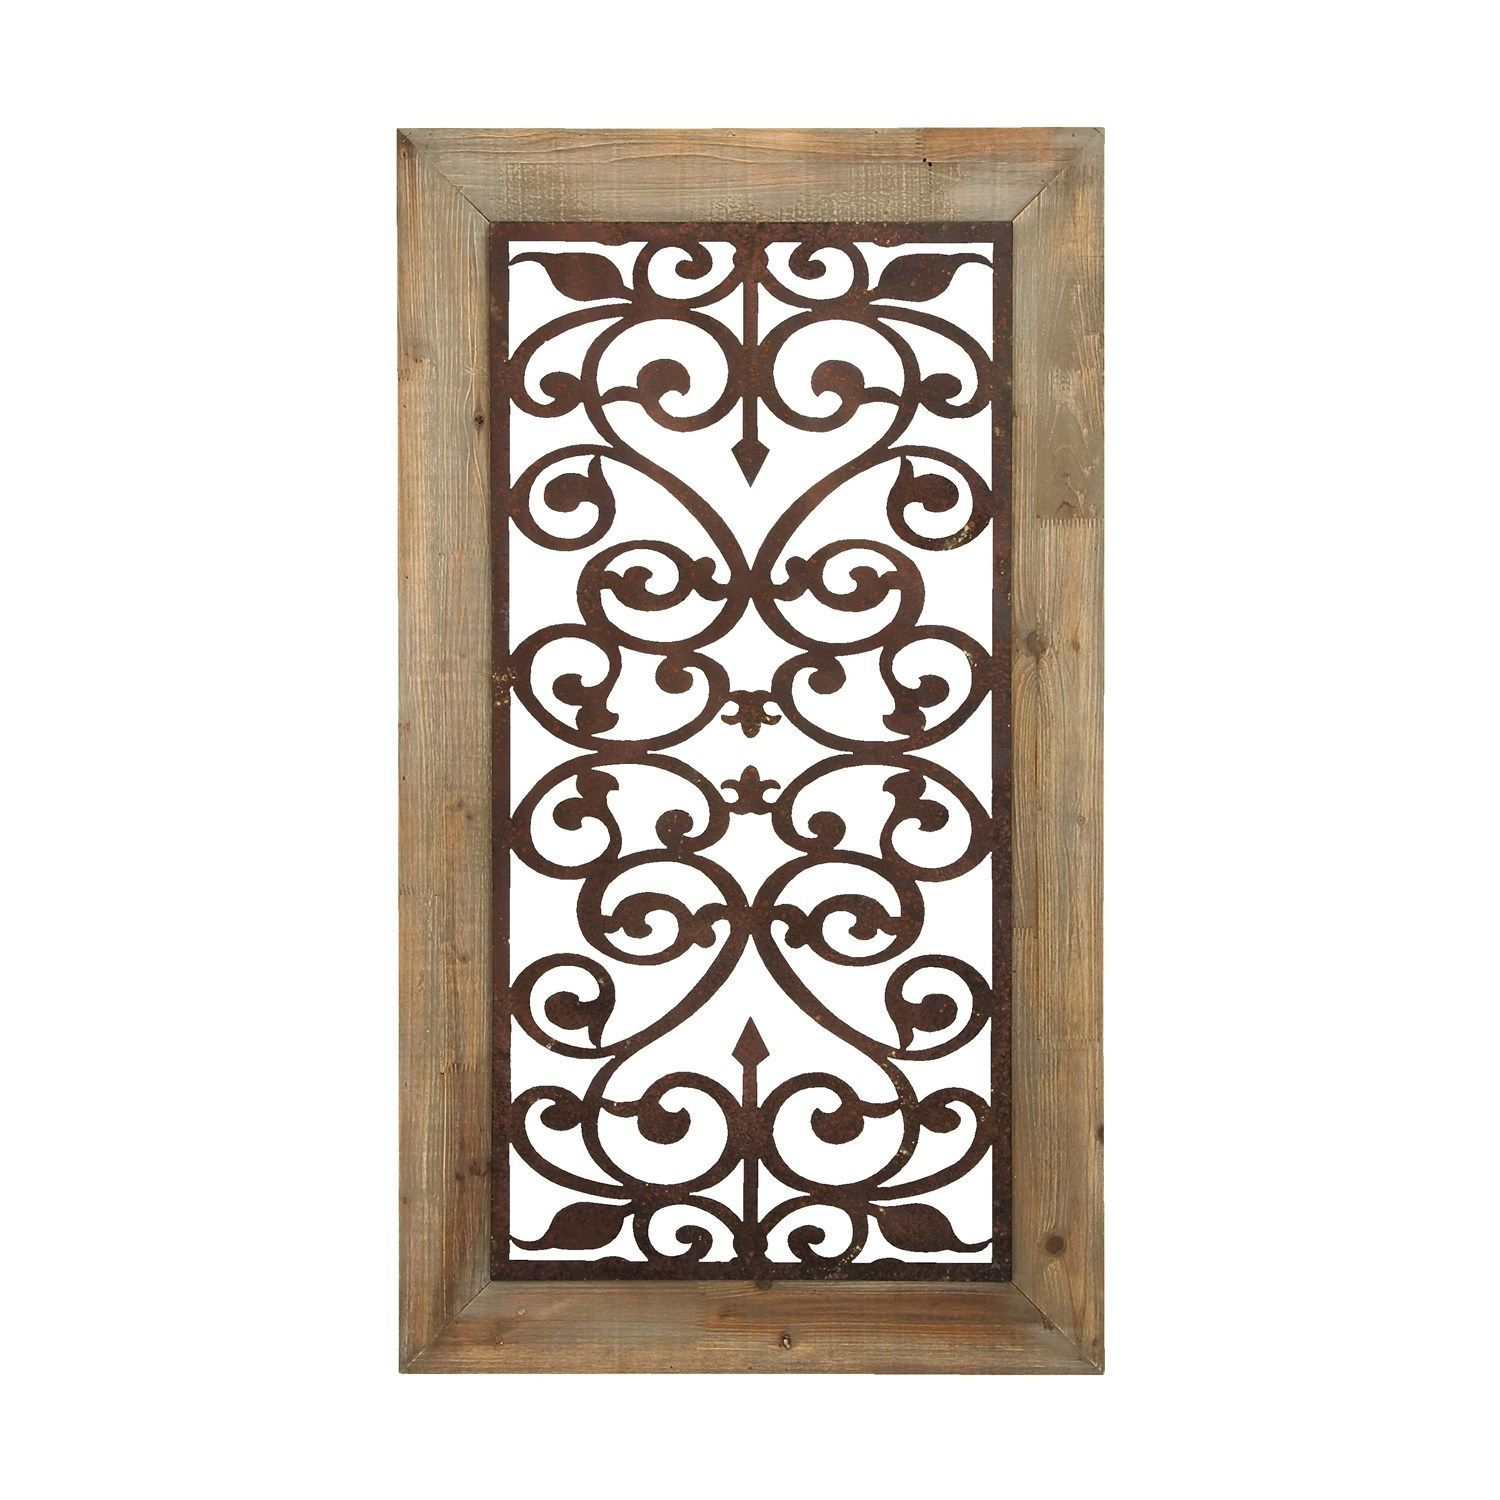 Ironwork For Walls Woodland Imports 85971 Garden Style Wall Plaque With Scrolling